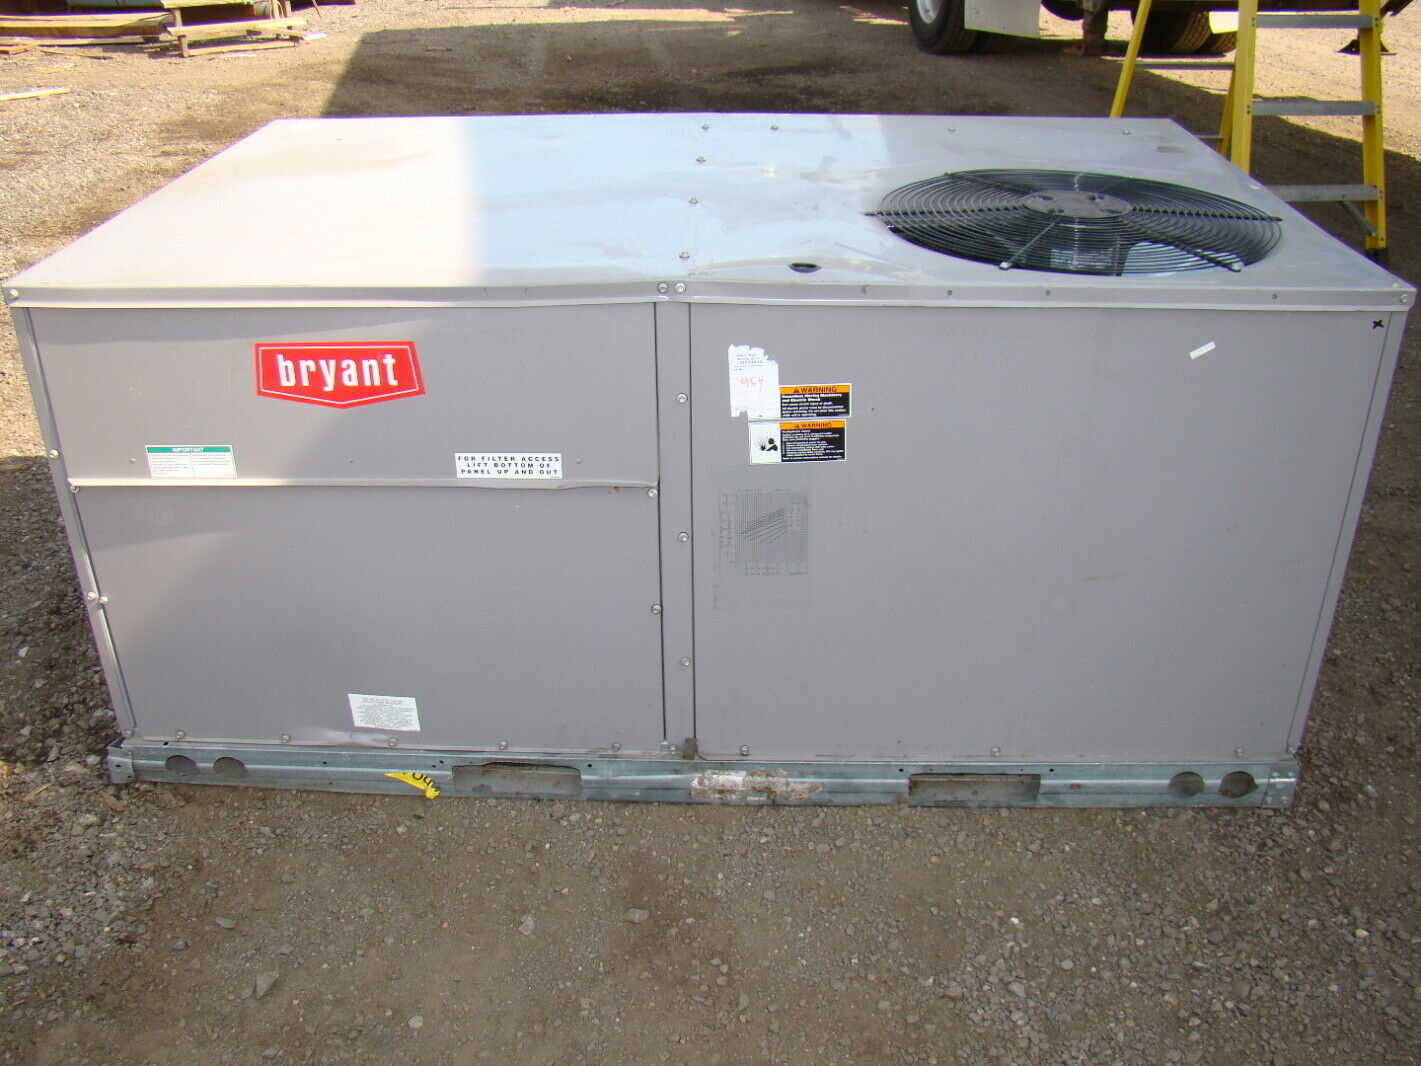 #976C34 Bryant 4 TON 78 499 BTU Air Conditioning Unit 460v EBay Brand New 141 4 Ton Ac Units images with 1421x1066 px on helpvideos.info - Air Conditioners, Air Coolers and more